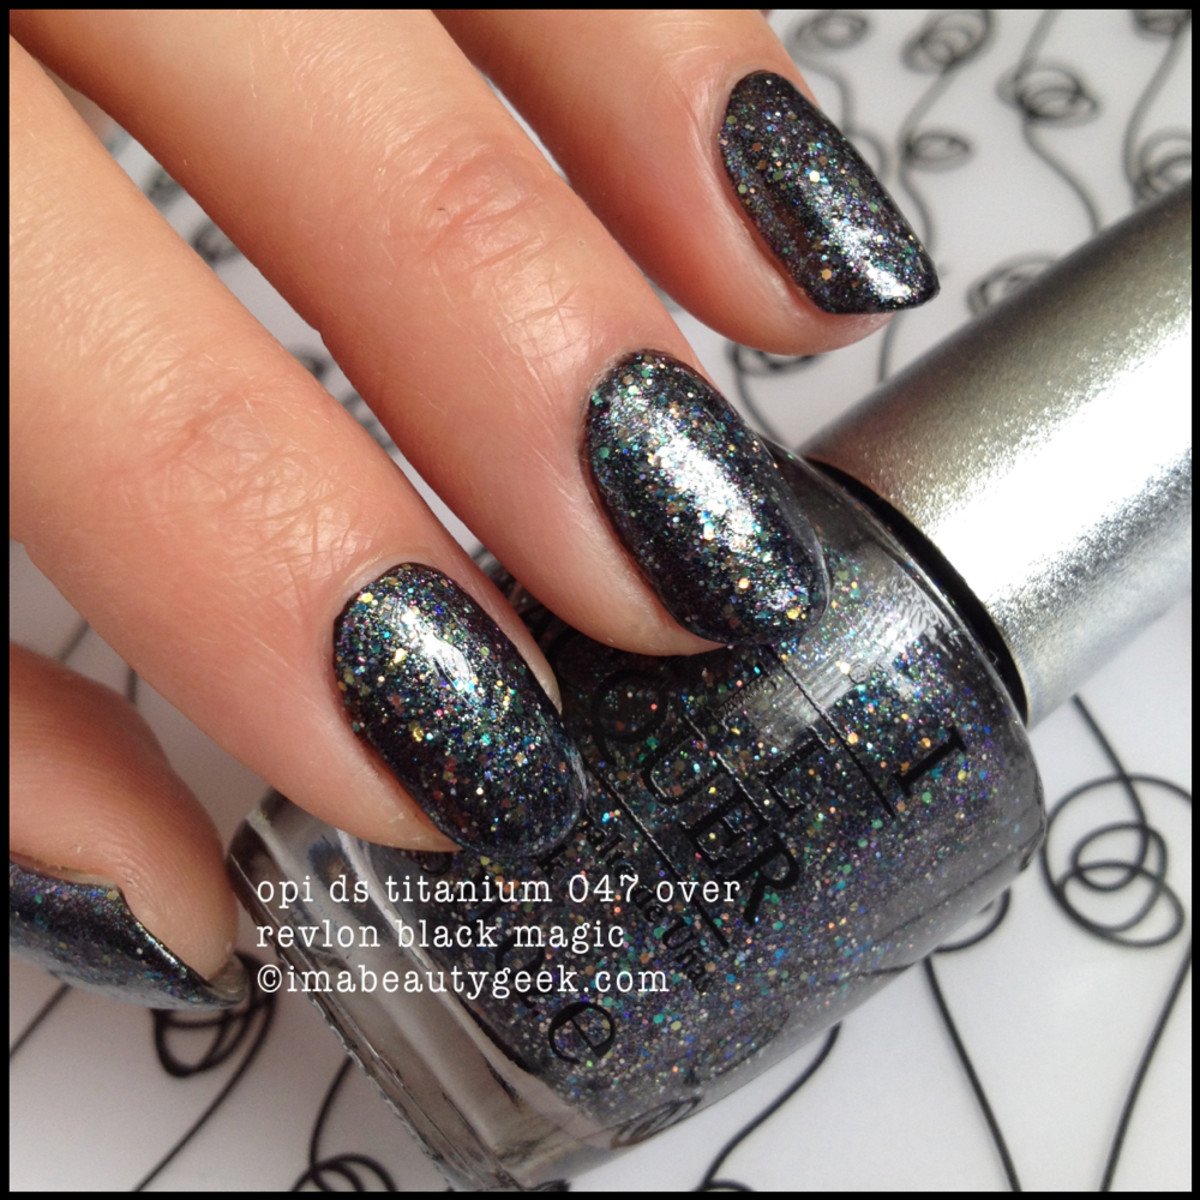 OPI DS Titanium 047 over Black Magic Fall 2014